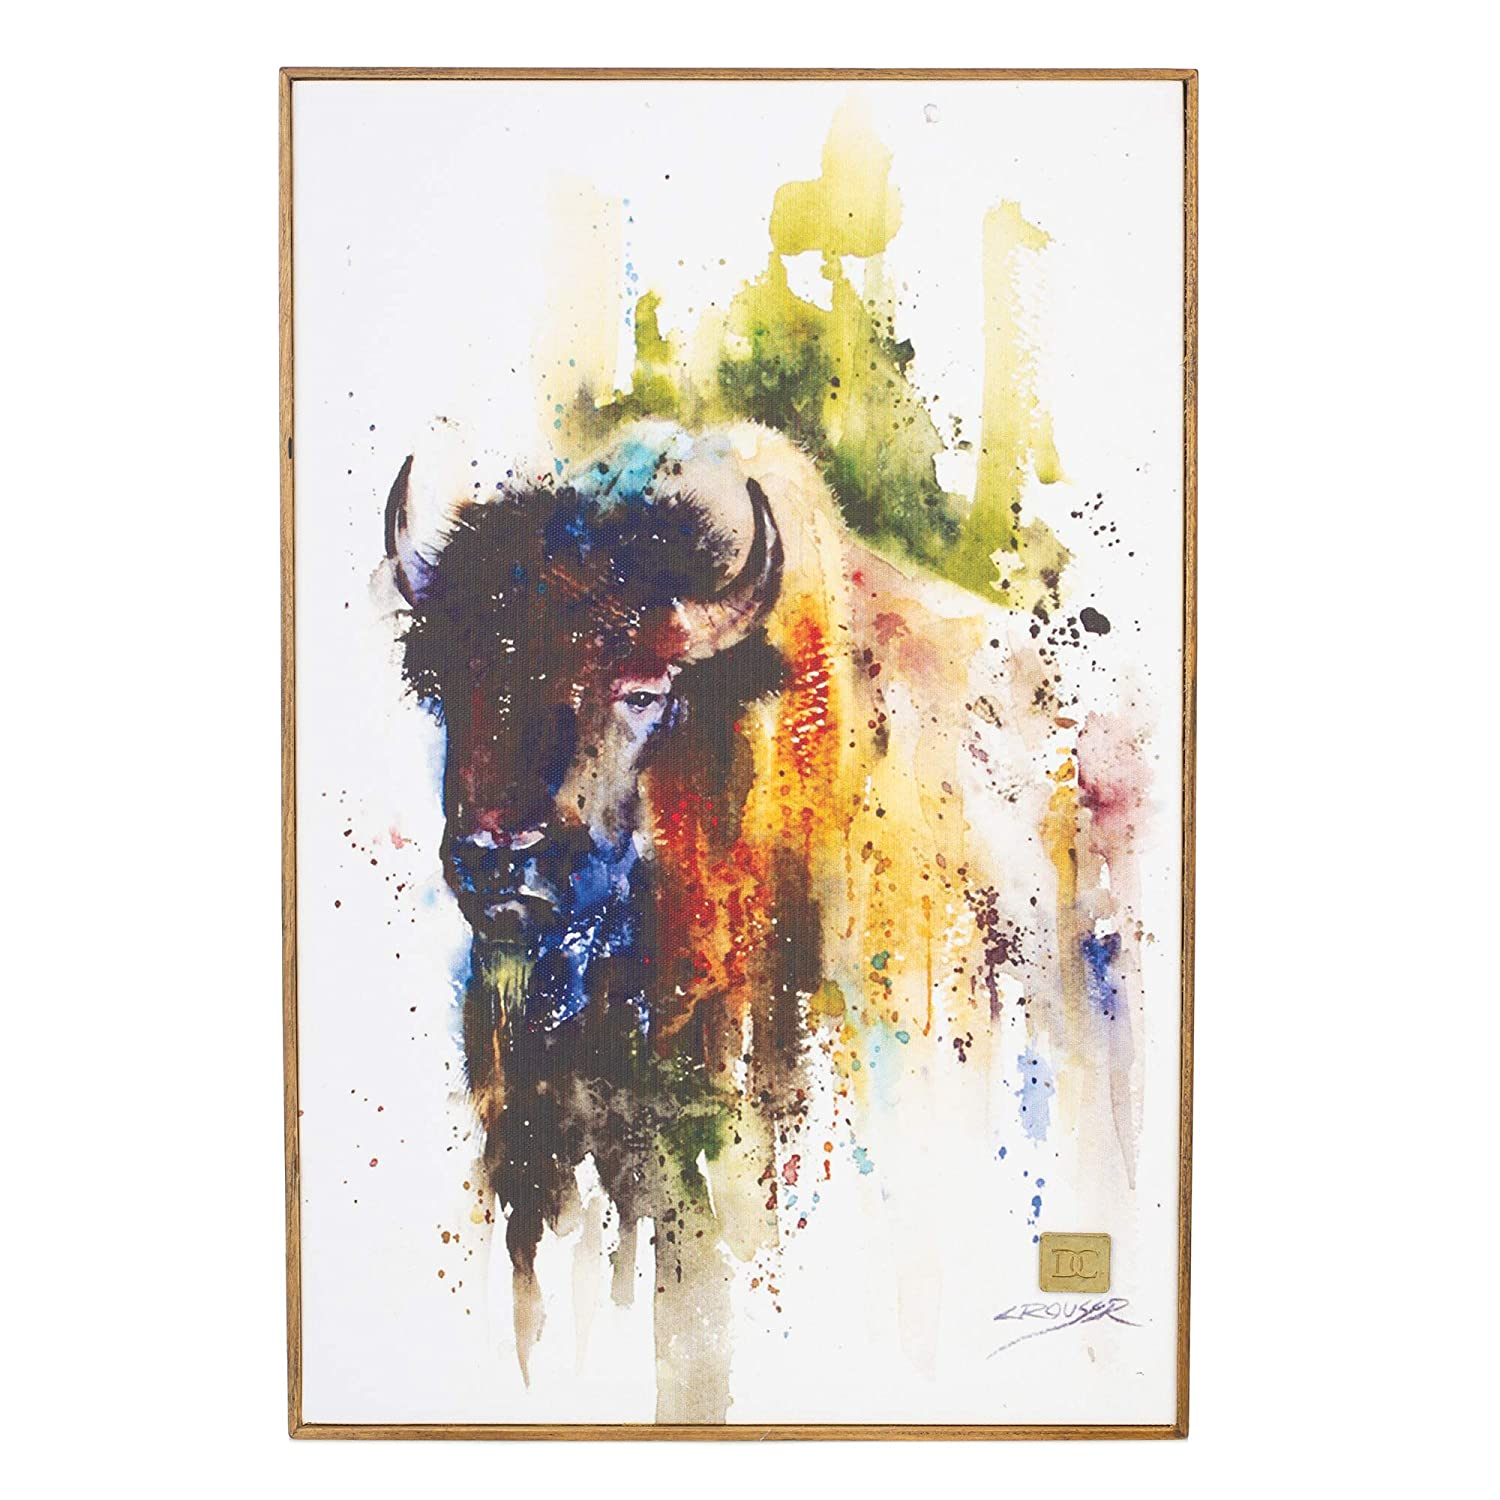 DEMDACO Dean Crouser American Bison Gallery Wrapped Canvas Print 10 x 15 Ash Wood Framed Wall Art Plaque